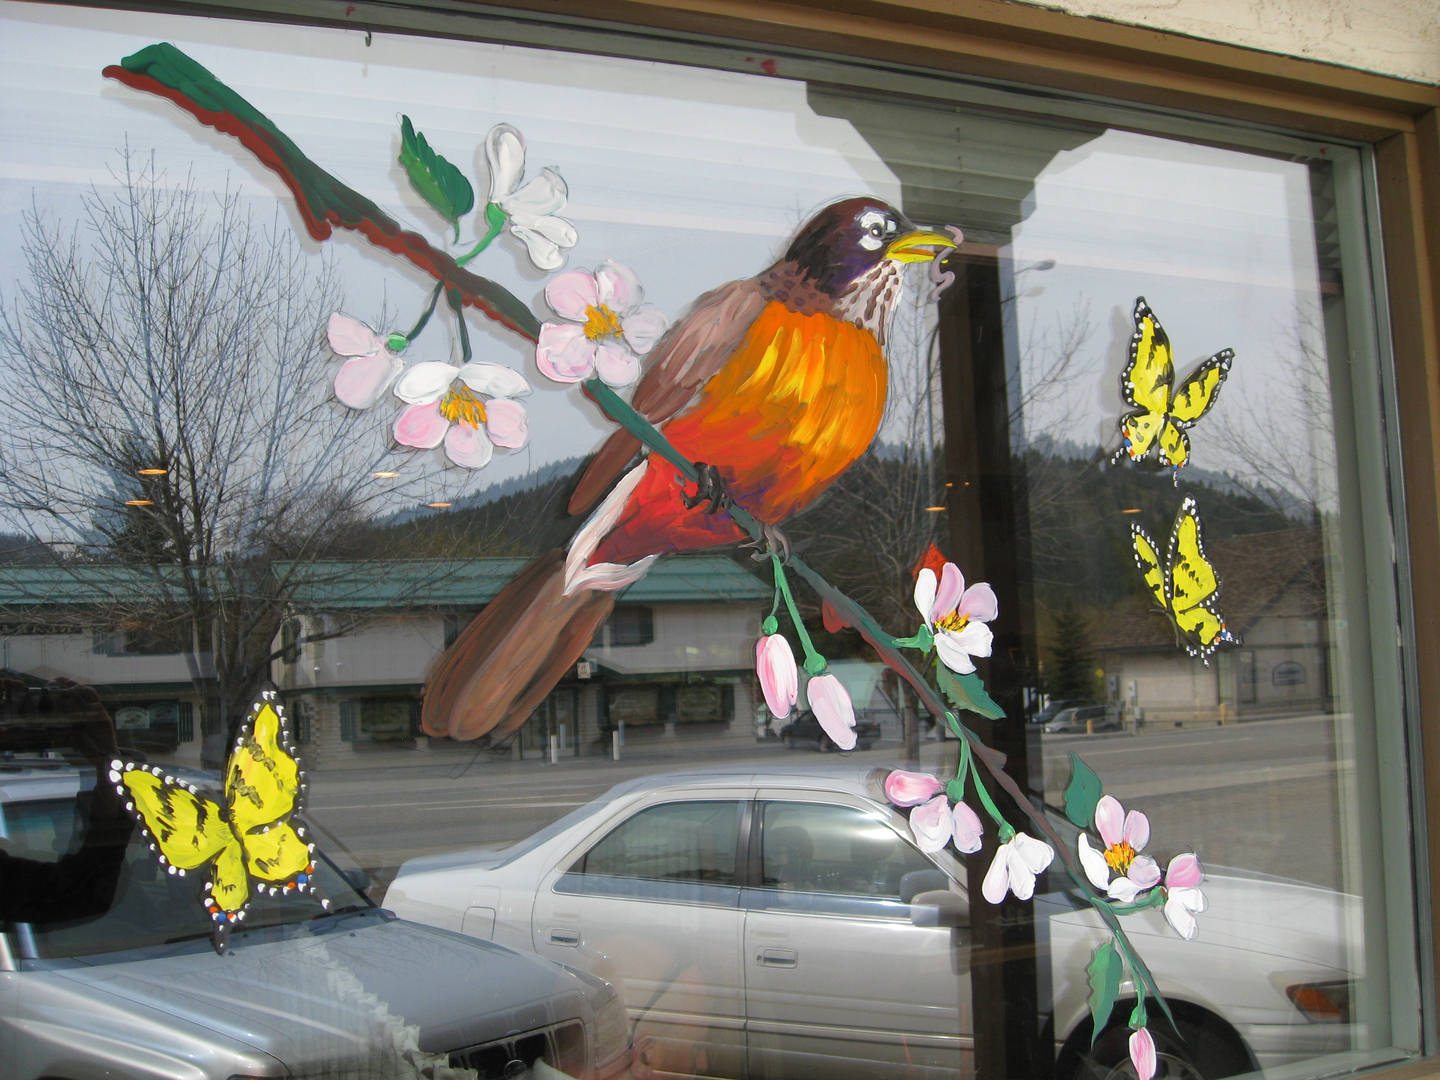 Spring window painting - I Paint Windows In Leavenworth Wa And Surrounding Areas Only I Generally Paint 3 Times A Year For Spring Fall And Winter Holidays But Am Available For